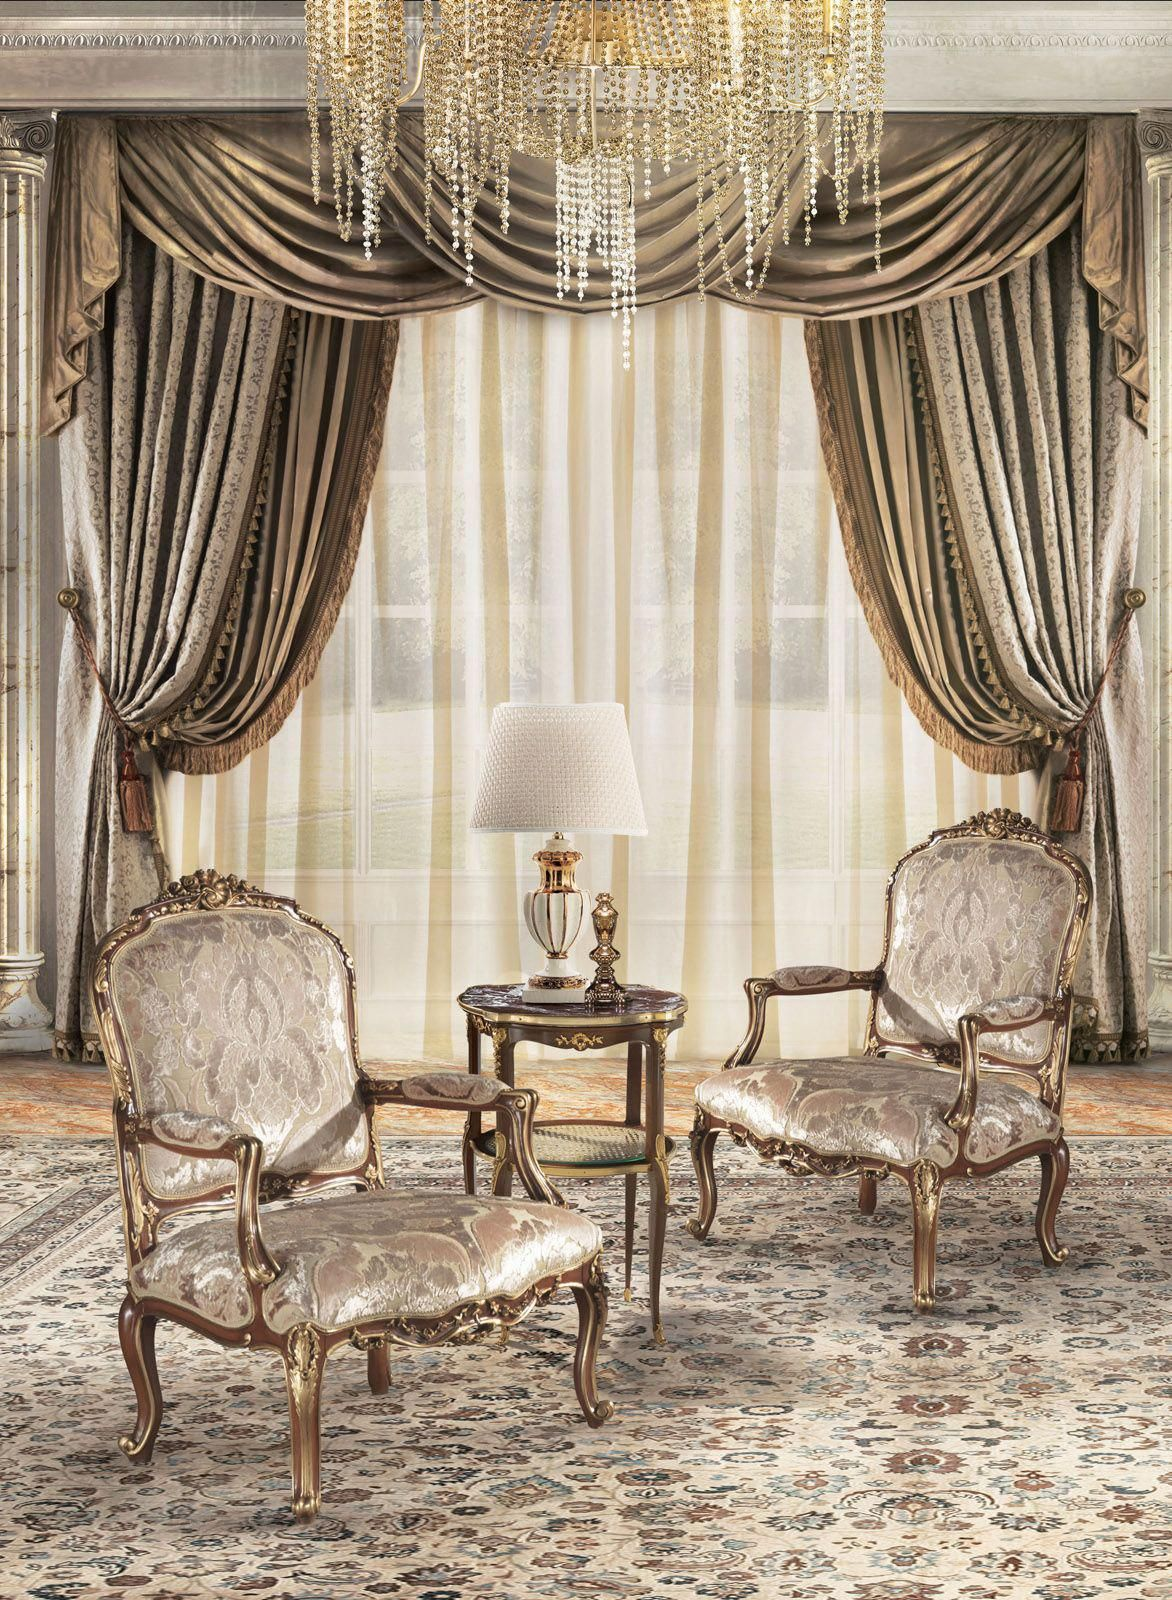 House Furniture Old Vintage Sofa Cool Antique Chairs 20190208 Luxury Curtains Living Room Curtain Designs For Bedroom Curtains Living Room